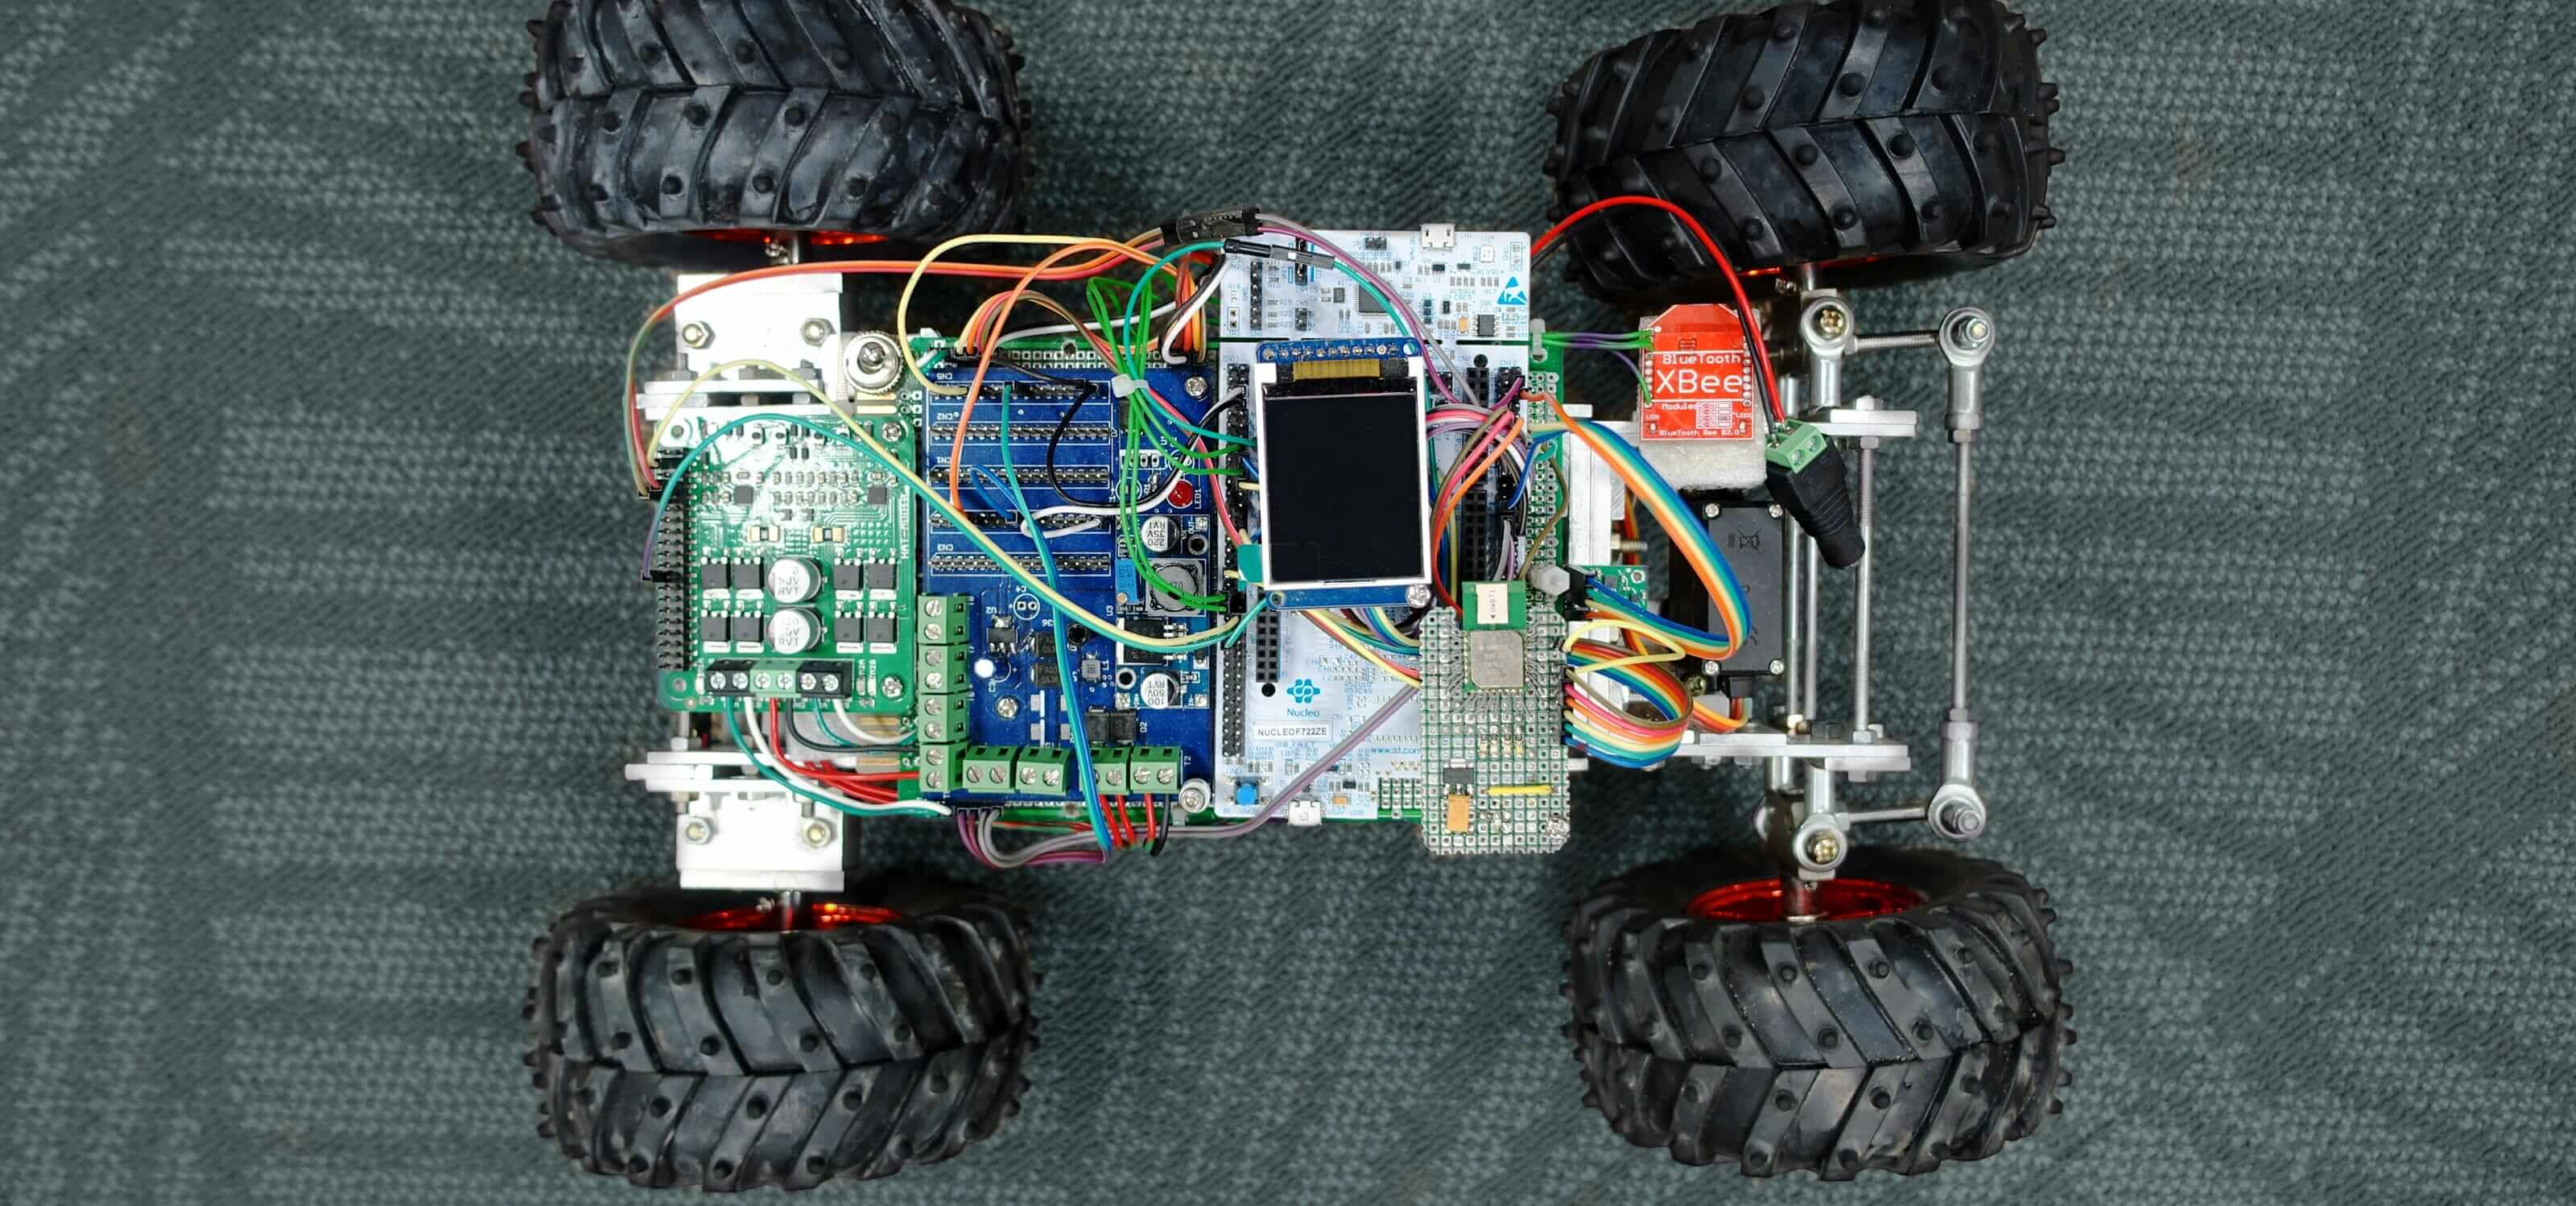 A model racing car seen from above with textured black tires and colorful exposed wiring and circuit board.